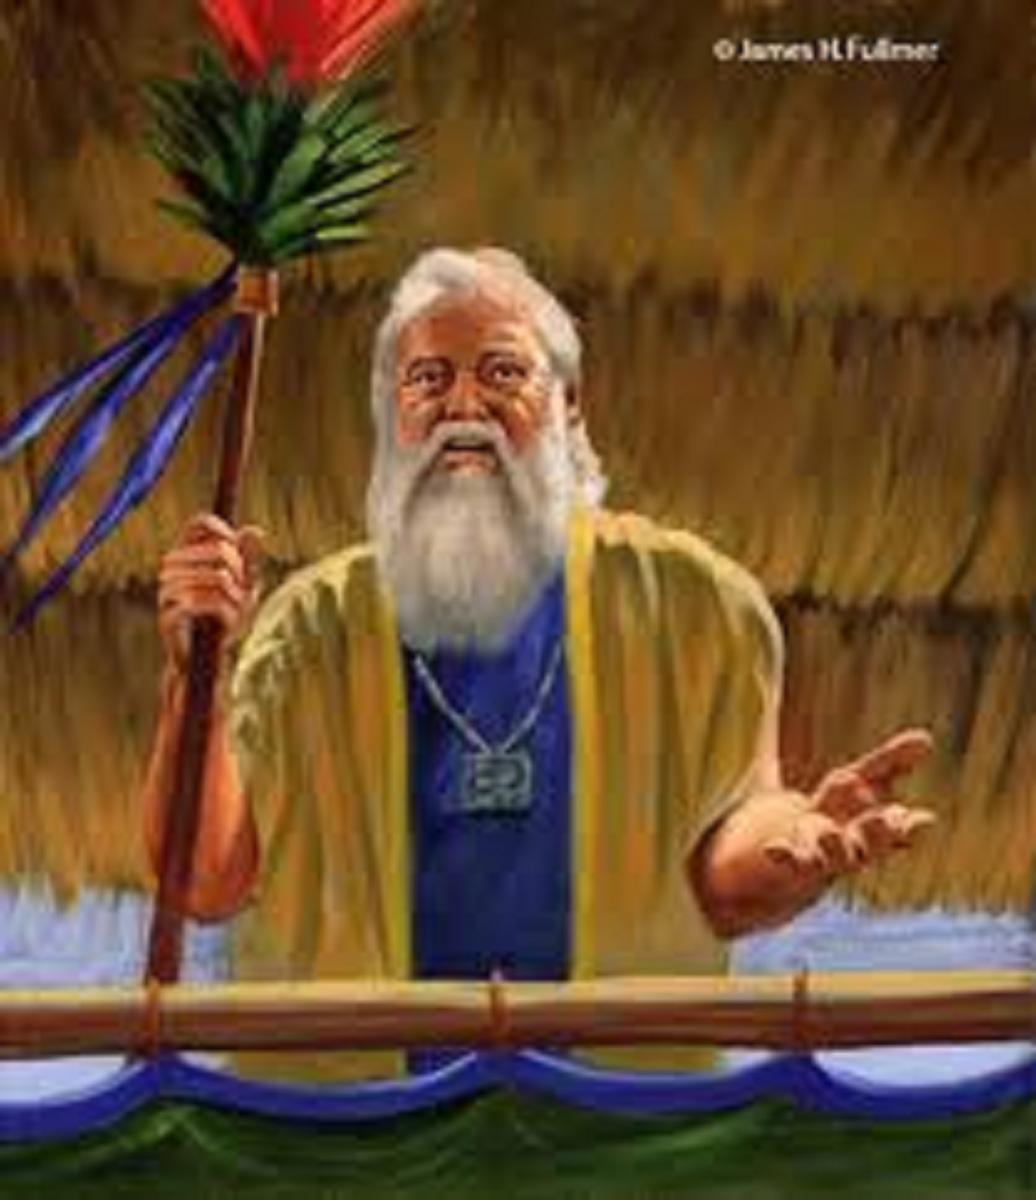 king-benjamin-law-giver-of-the-nephite-nation